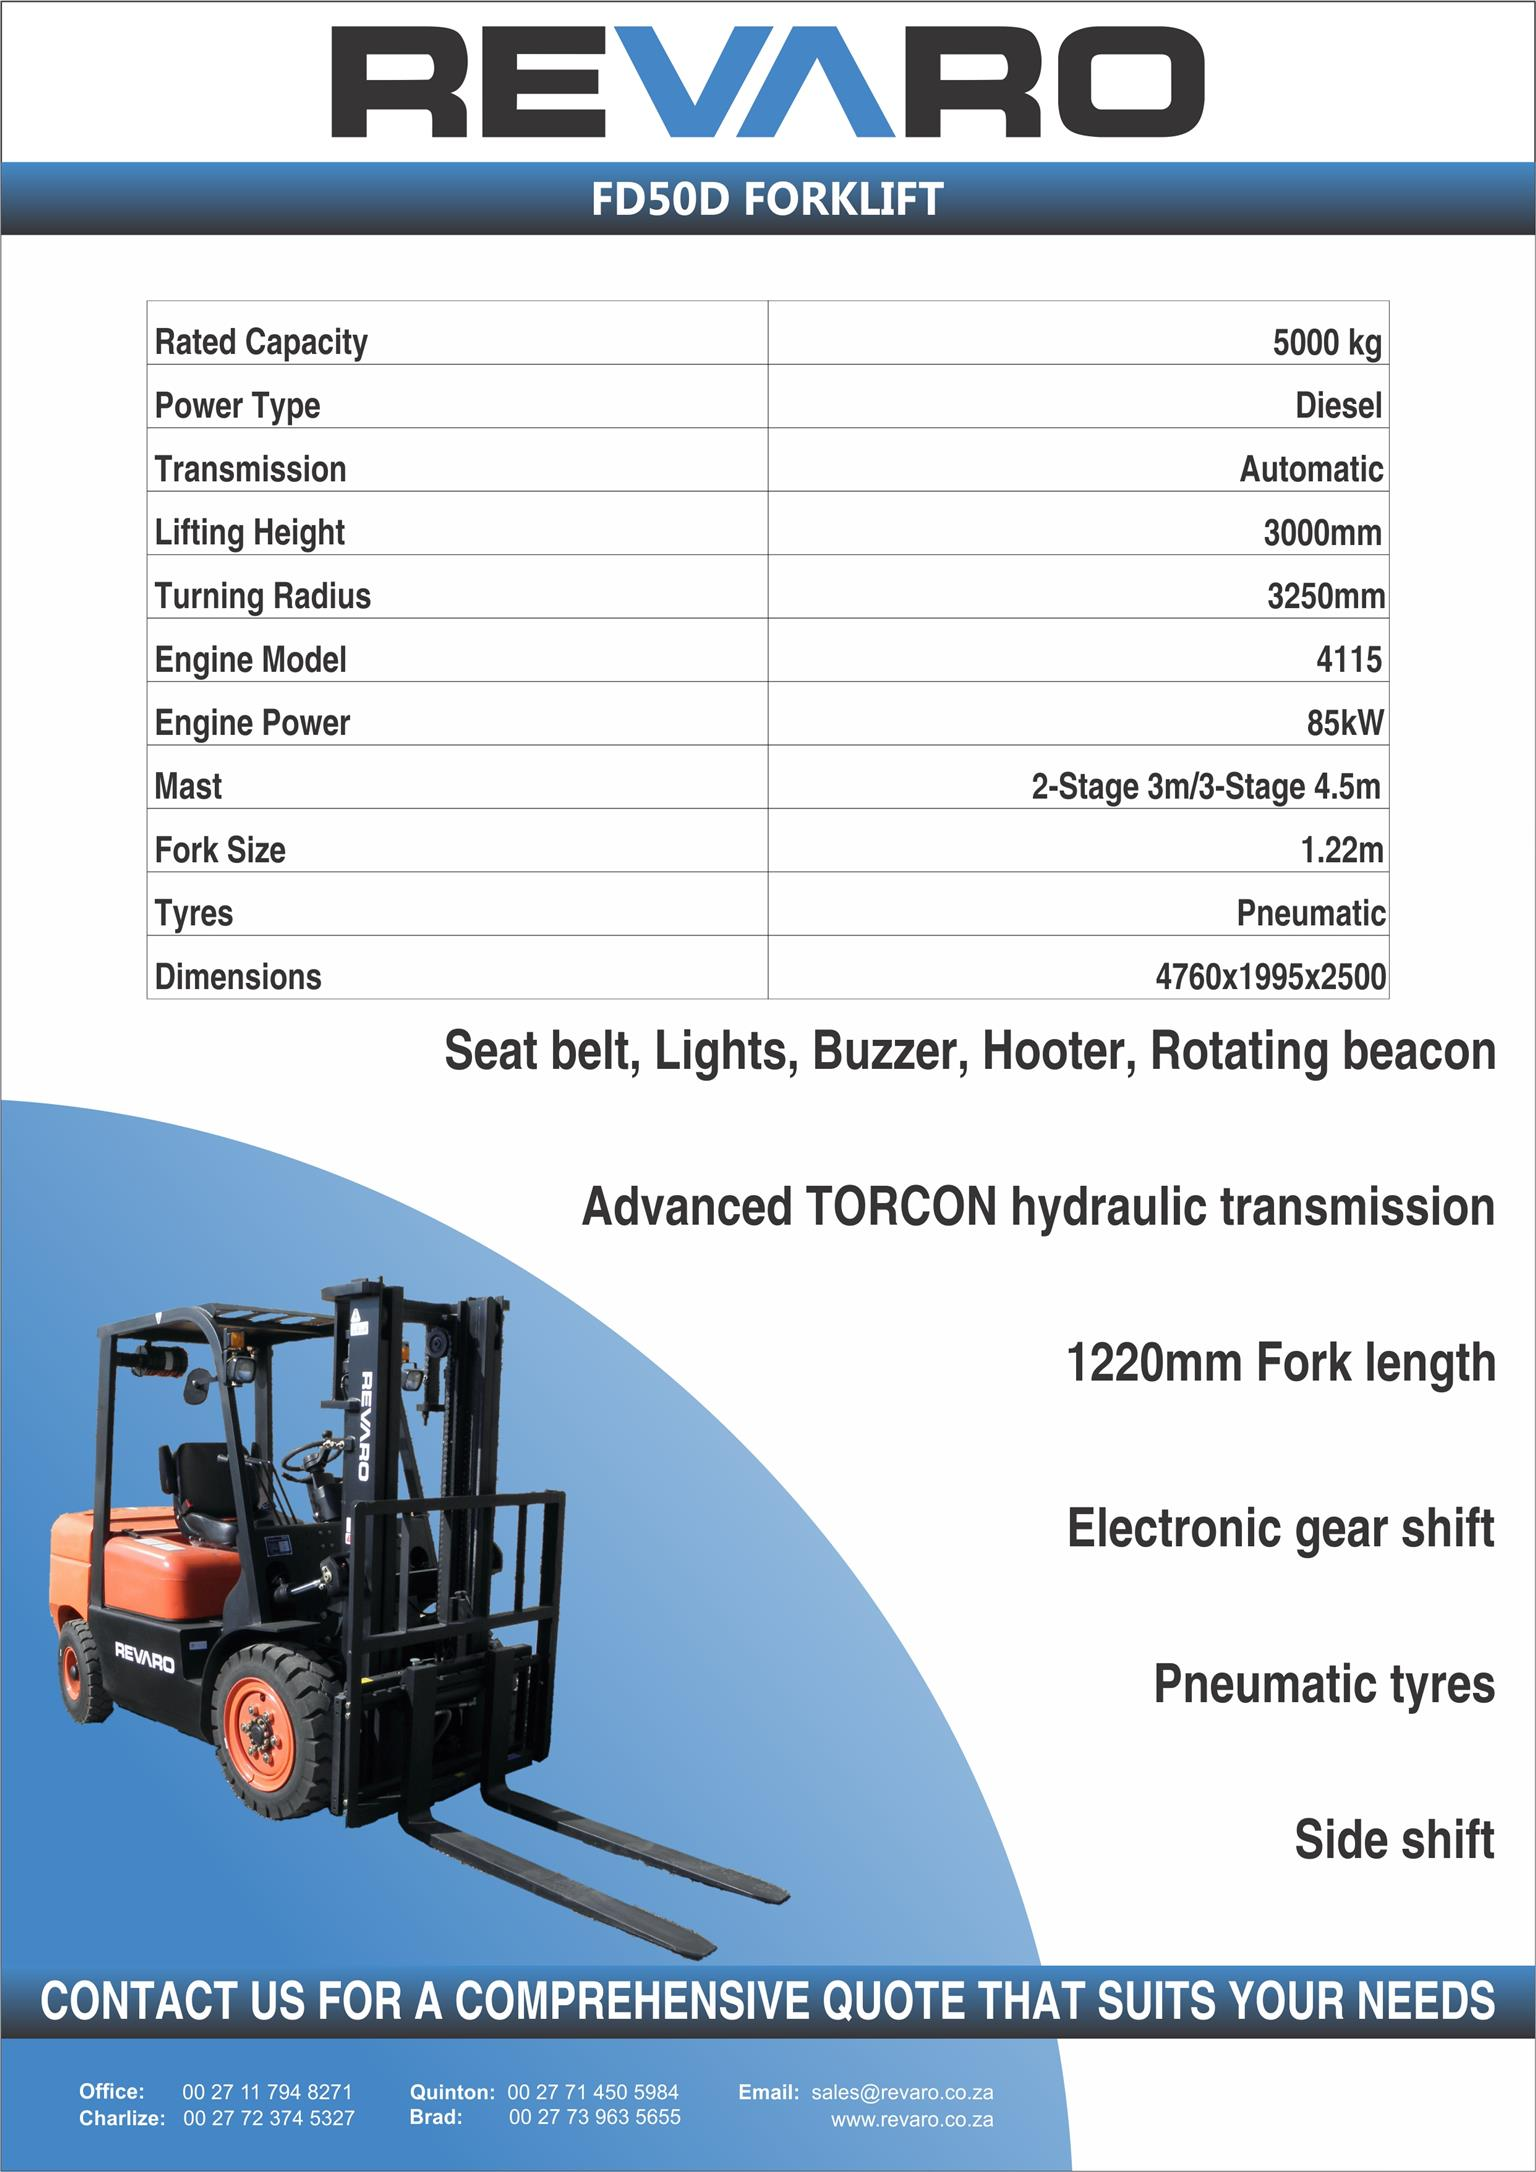 Revaro forklifts standard and all terrain Affordable Innovation